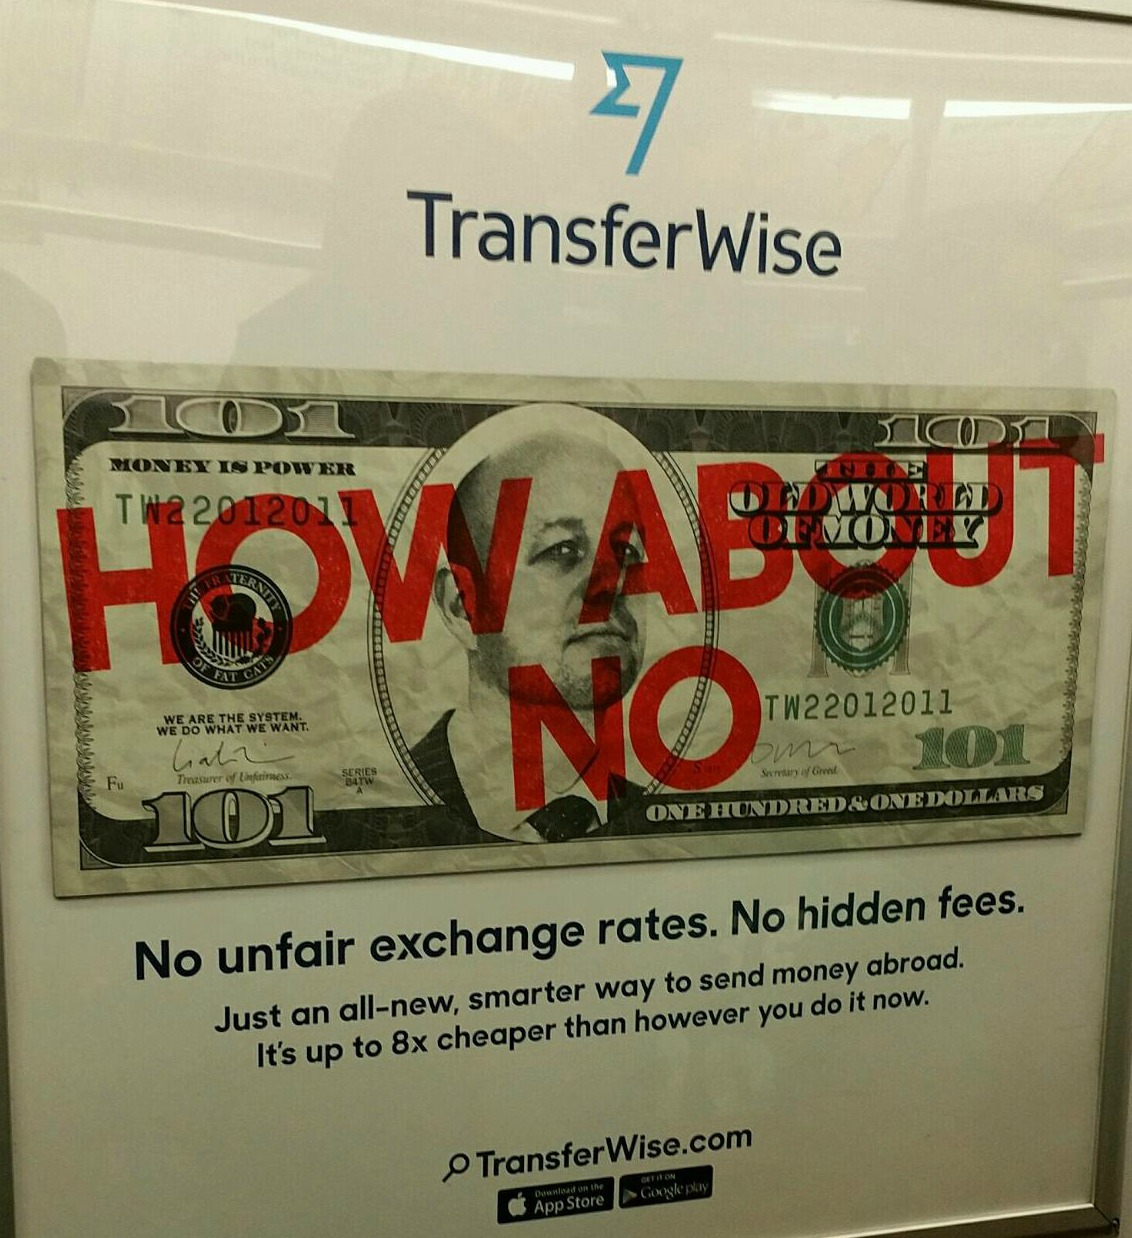 Transferwise Rebel What Is Your Cause Wiring Money From Mexico To Usa Transfer Billboards In New York City Subway March 2015